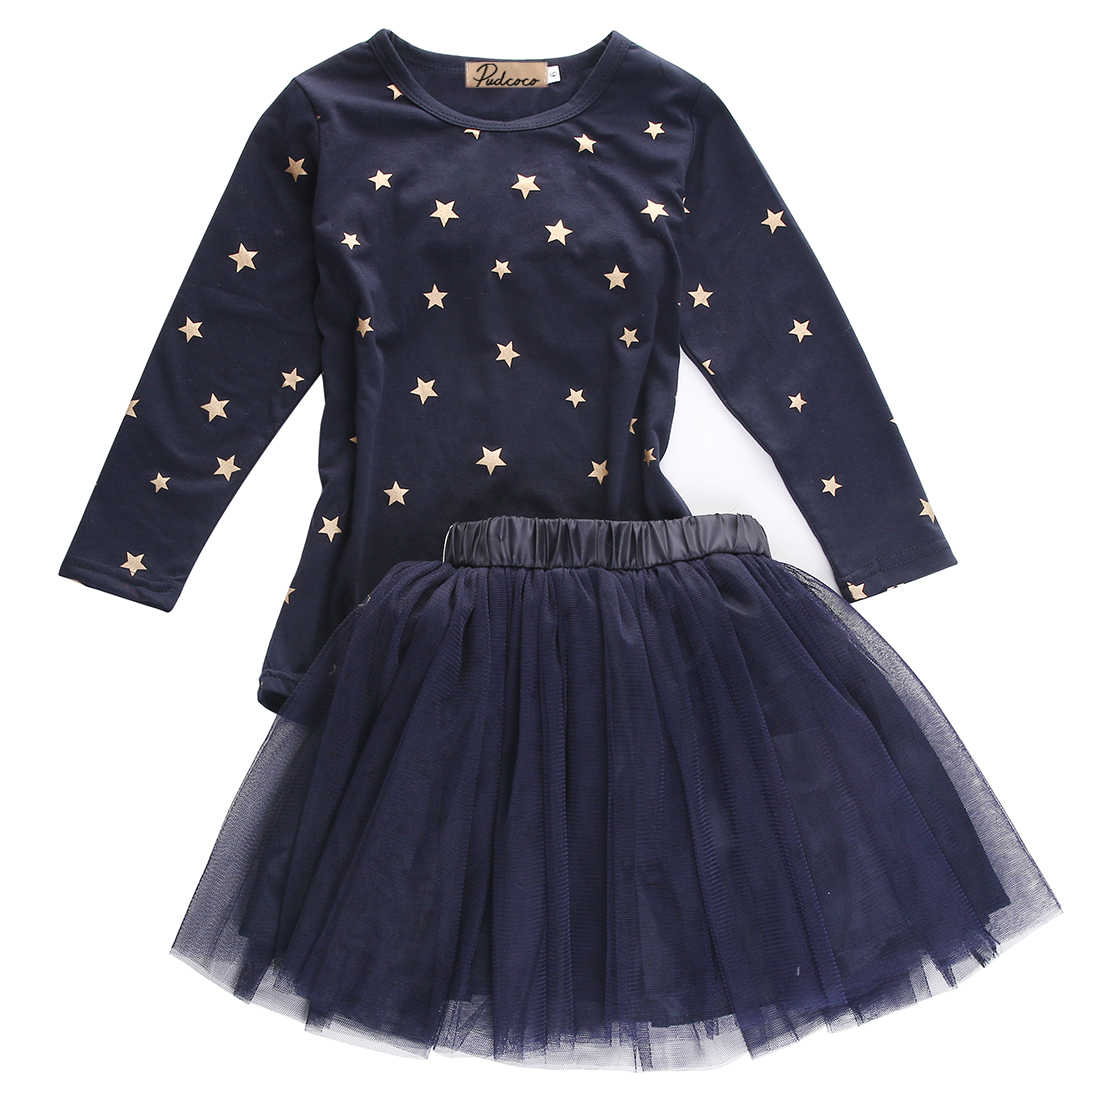 f4d77fa3457 Detail Feedback Questions about Children Baby Girl Party Star Bow Long  Sleeve Tops T shirt+Tulle Skirts Outfits Set Tutu Dress Casual on  Aliexpress.com ...